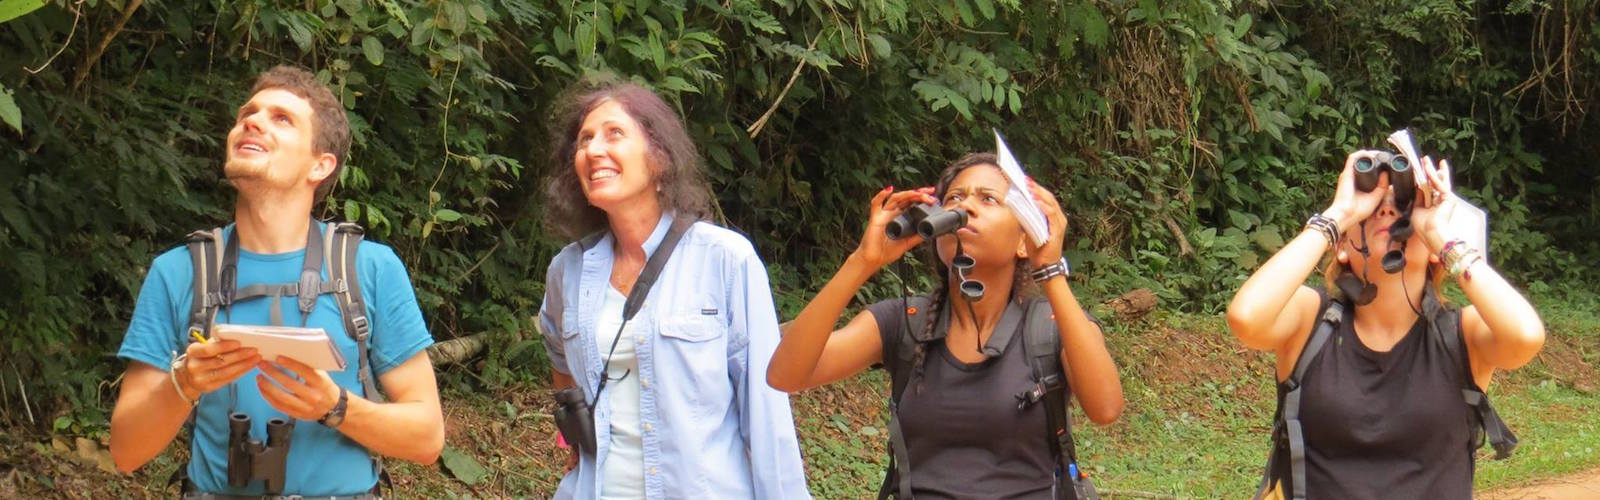 Members of the Muriqui Project of Caratinga and Dr. Karen Strier observing monkeys along a road.